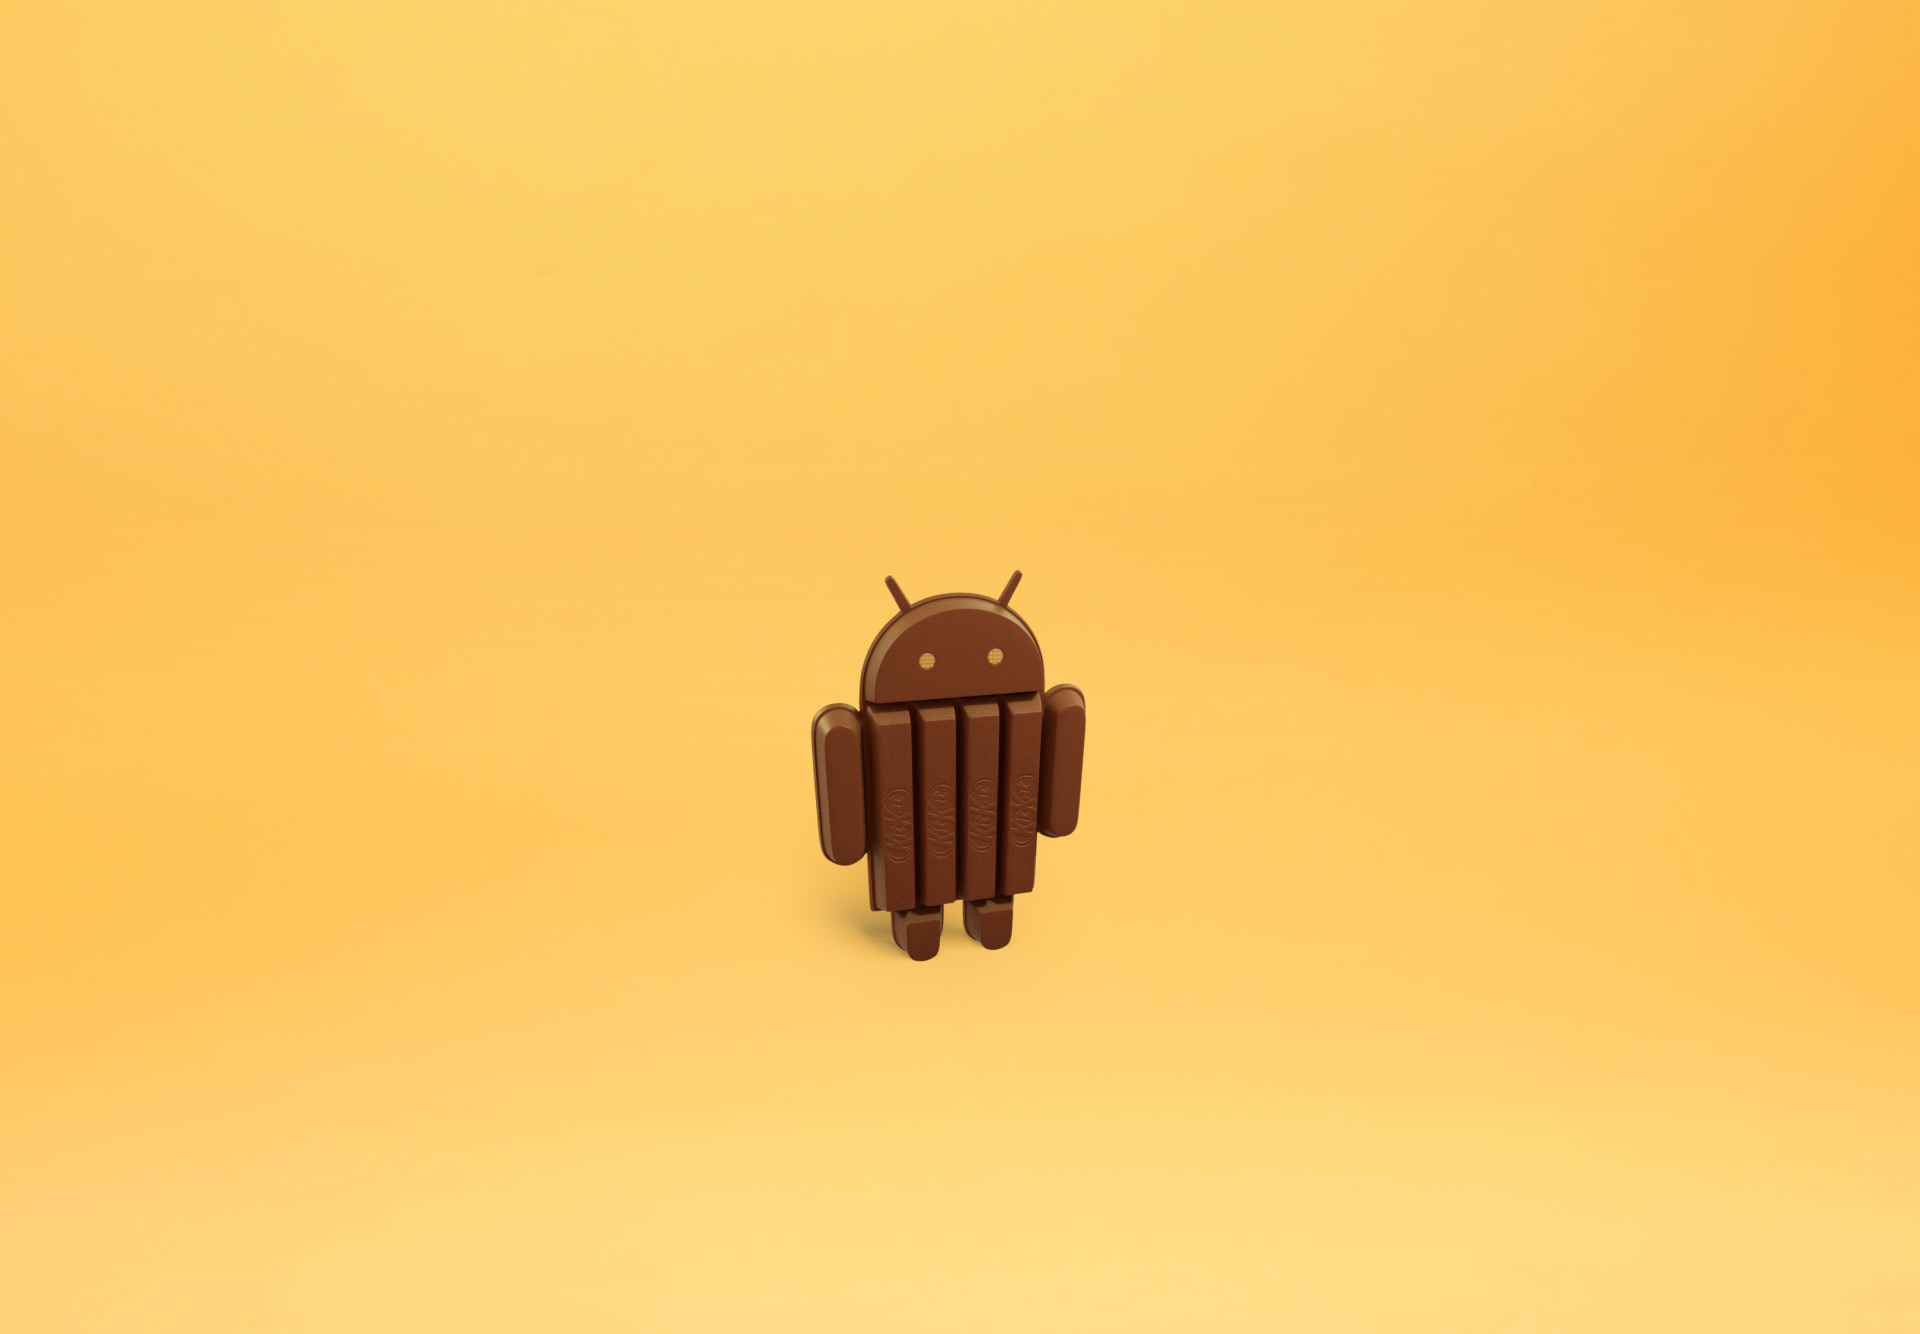 Android 4.4 KitKat wallpaper, KitKat Android, Android KitKat , KitKat Wallpaper, Official KitKat Wallpaper, Android Kit Kat, Kit Kat 4.4, Android 4.4, Android 4.4 Kit Kat wallpaper (2)